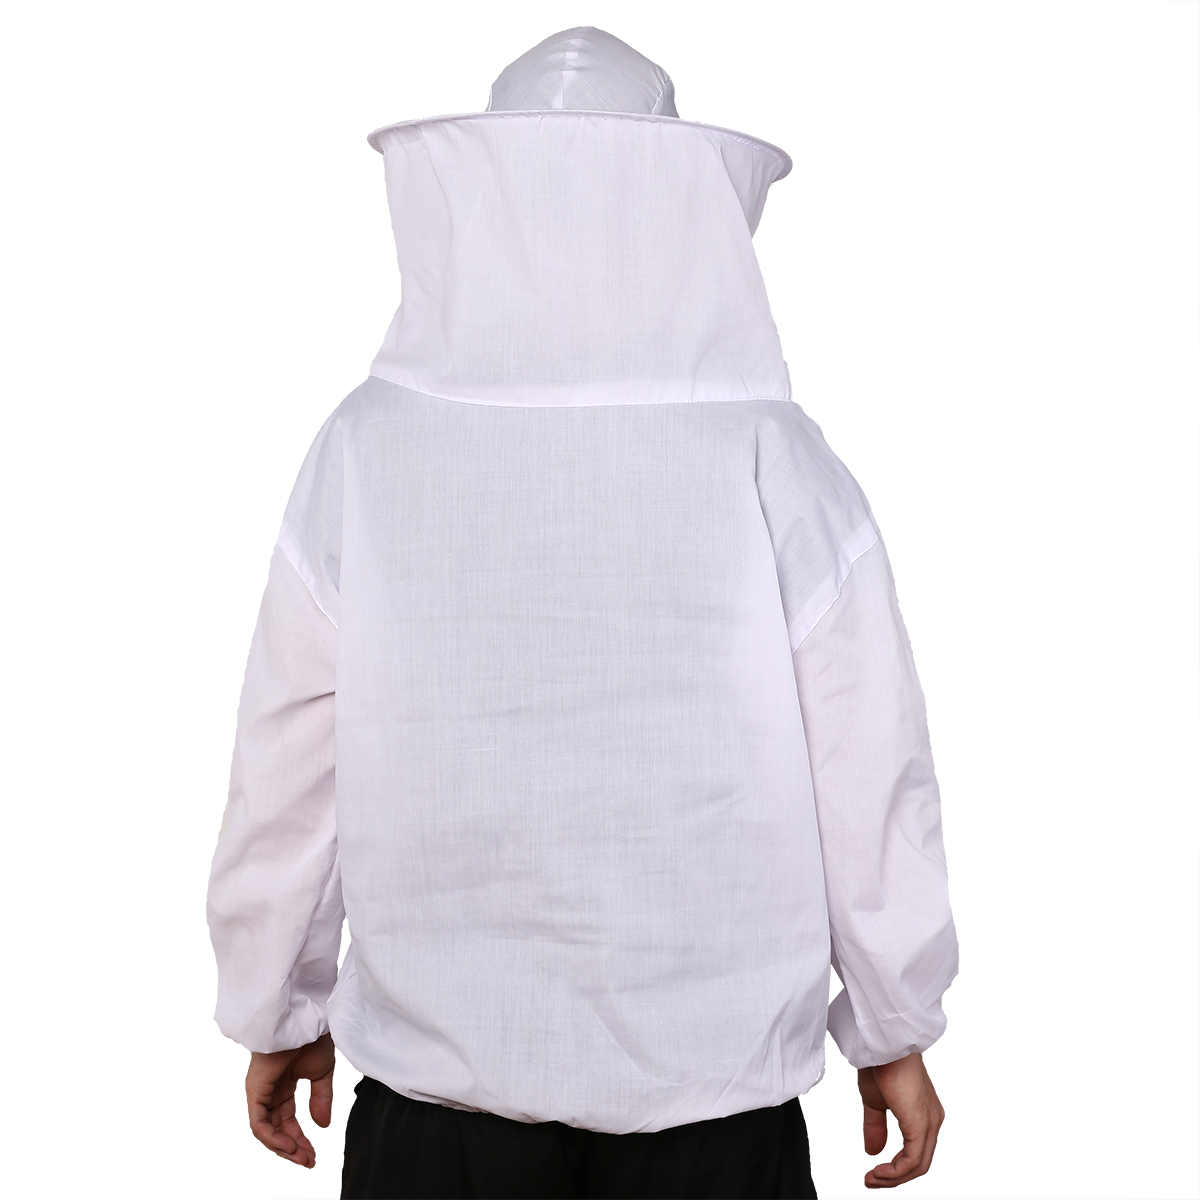 Jacket Smock-Equipment White With Long-Sleeve Gloves 75cm-Length Veil-Suit Protective